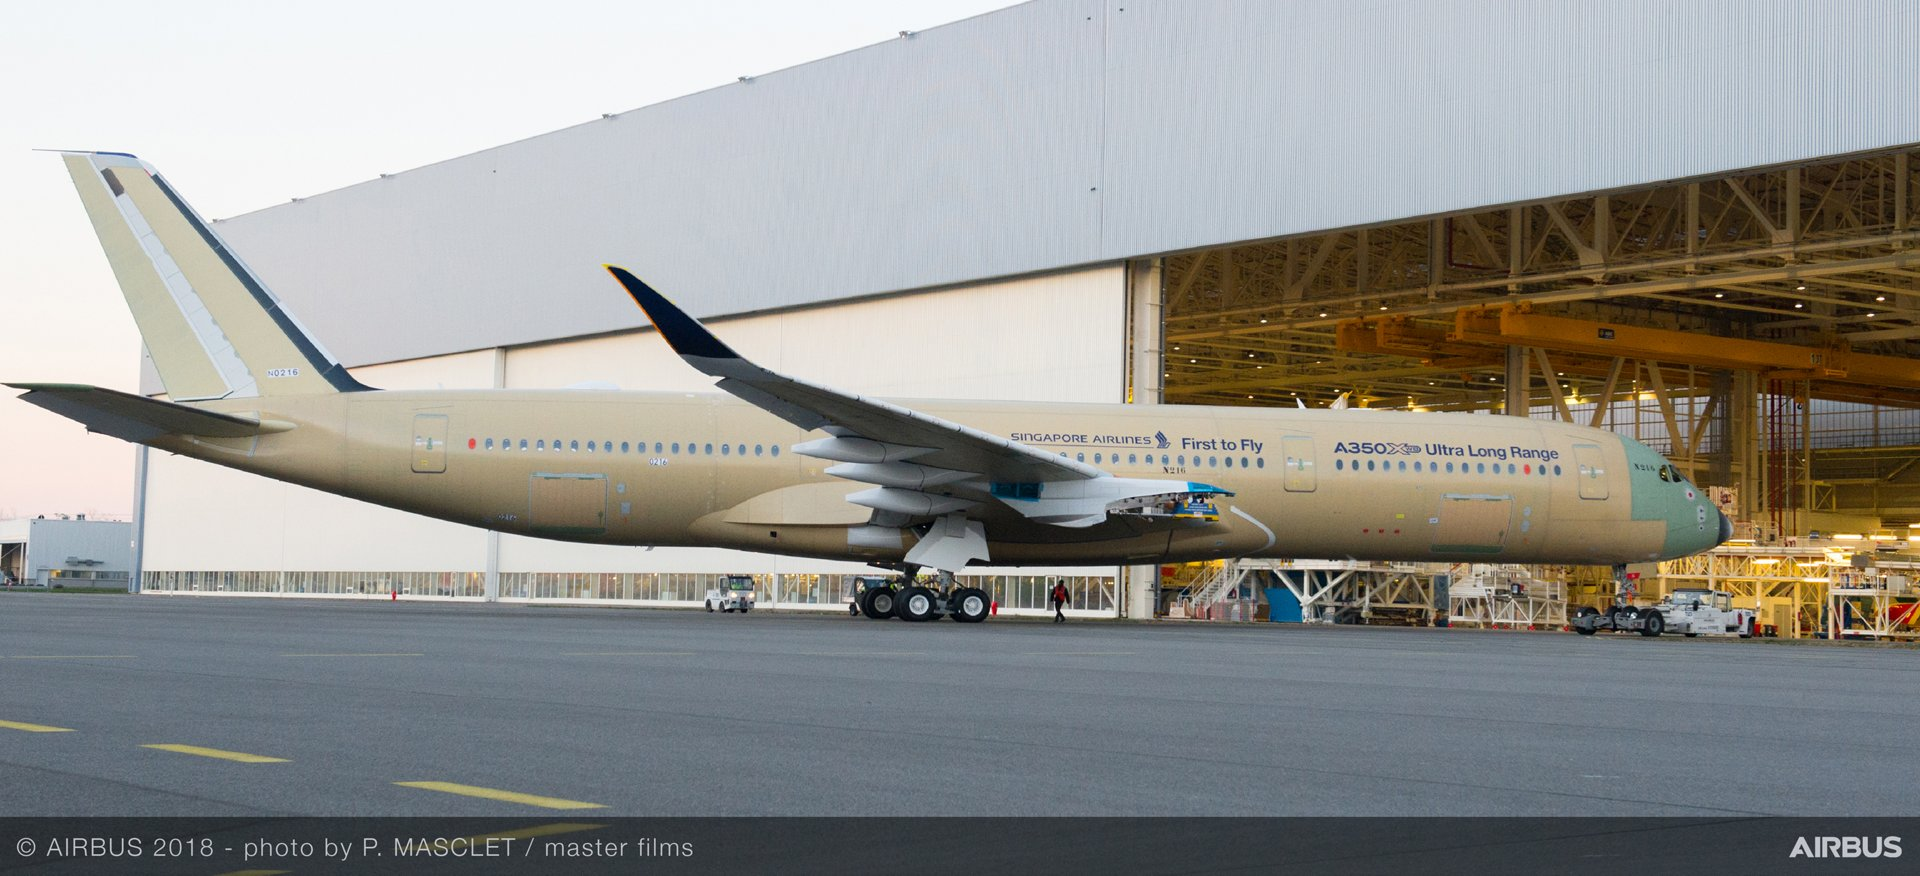 The first Ultra Long Range version of the A350 XWB has rolled out of the Airbus final assembly line in Toulouse. The latest variant of the best-selling A350 XWB Family will be able to fly further than any other commercial airliner and will enter service with launch operator Singapore Airlines later this year.